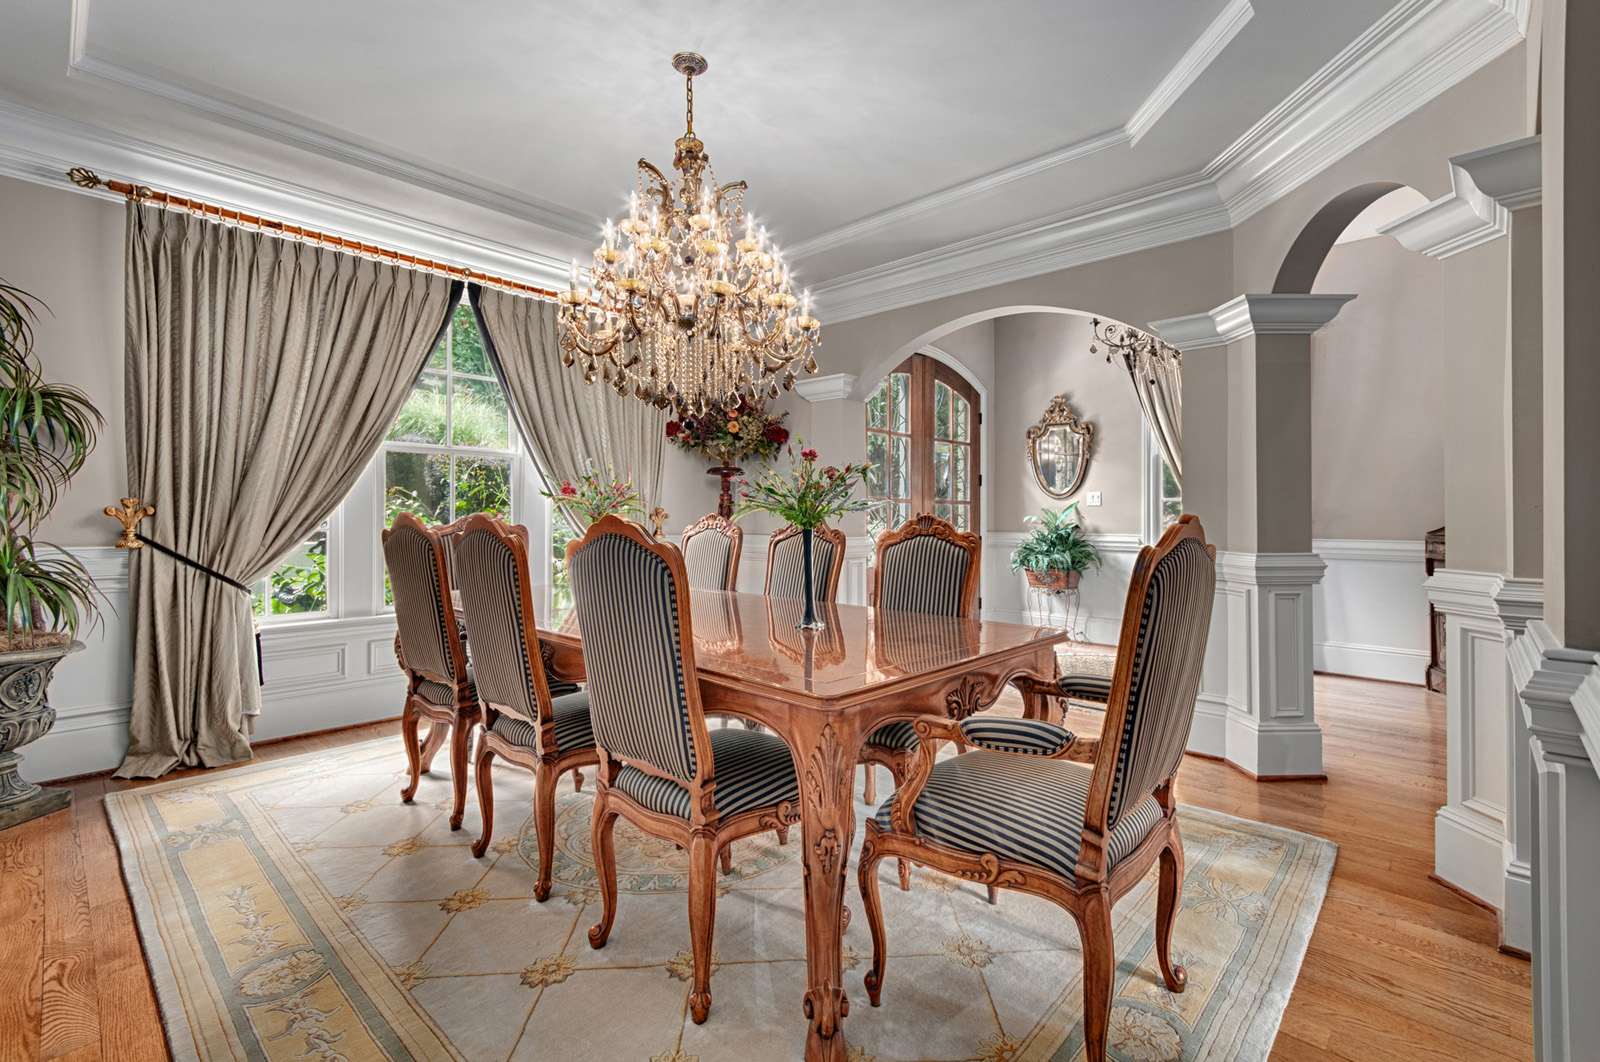 Classic Style Furniture fro Practical Chic Interiors. Chic grandeur dining group for high public